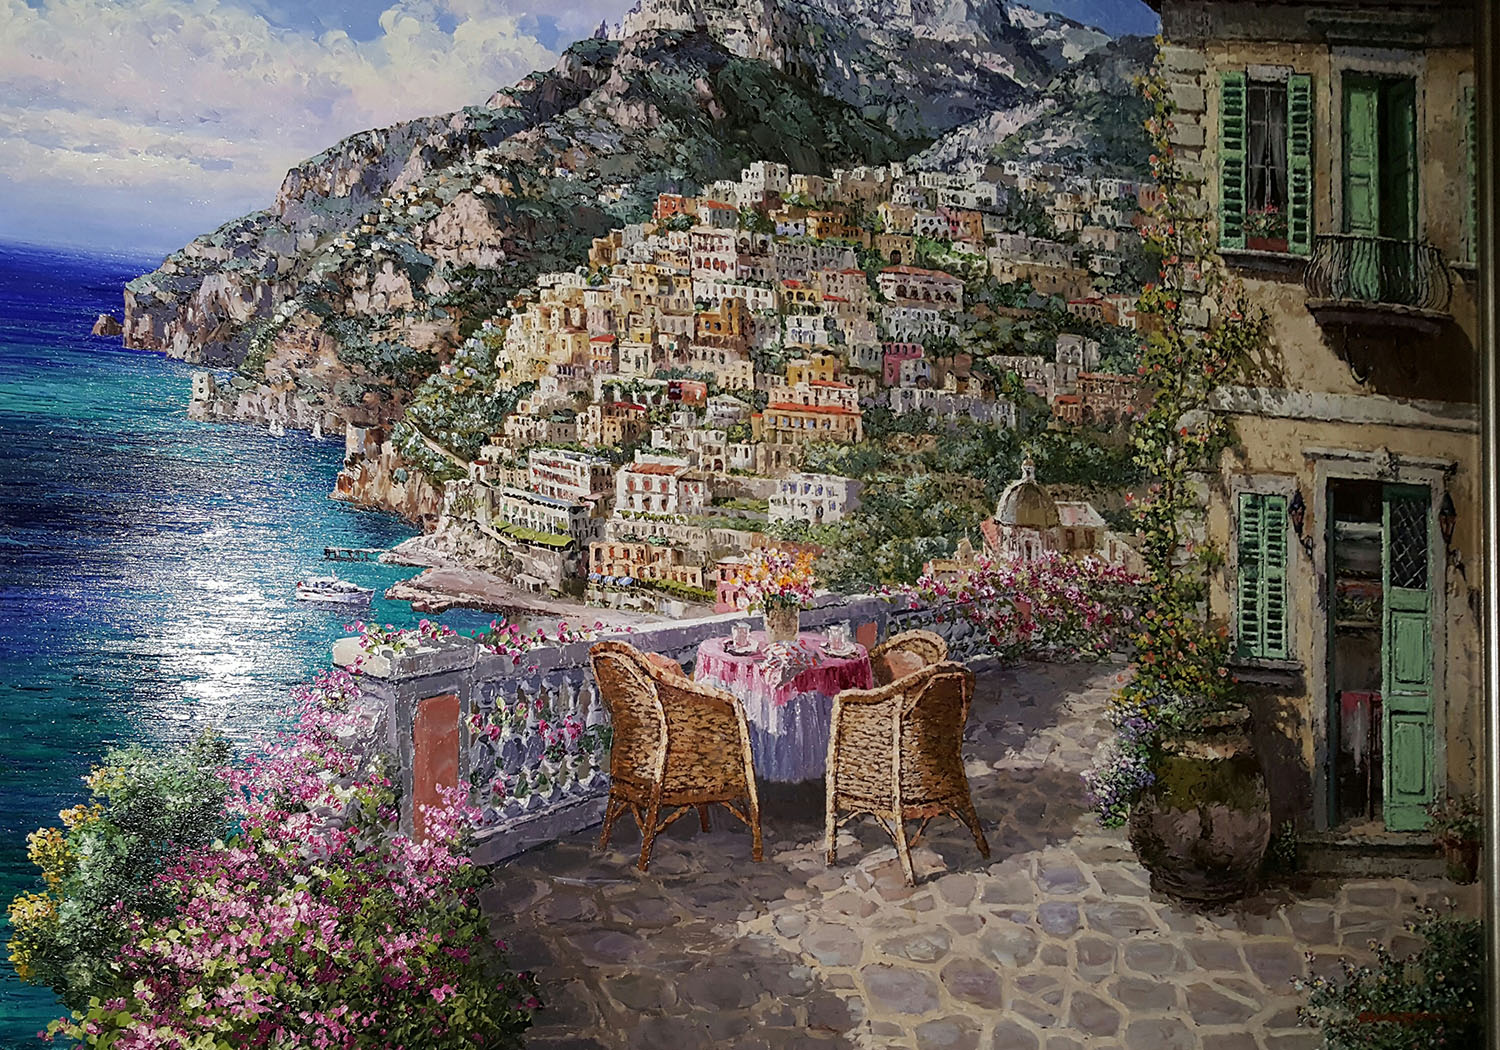 Balcony on Positano 36x48